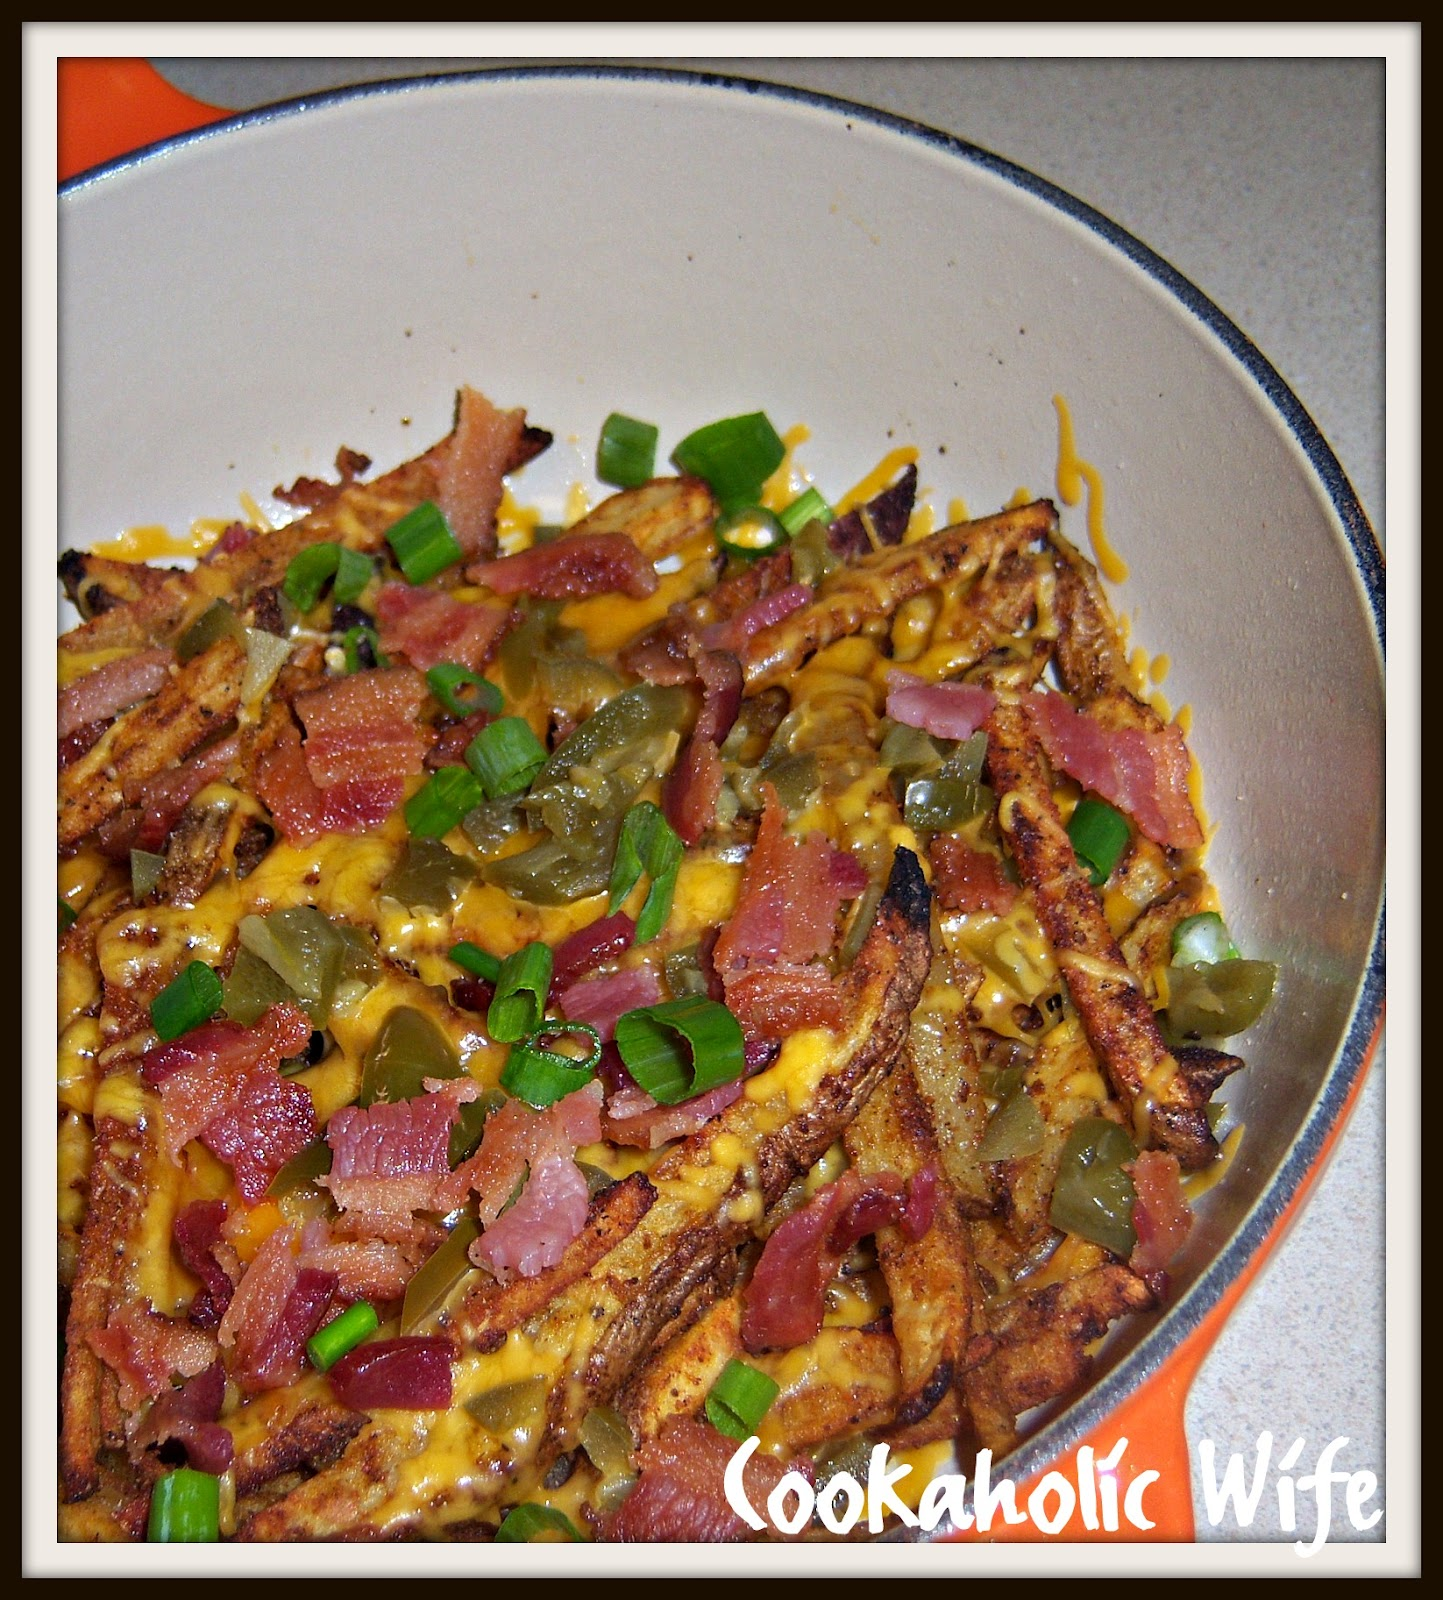 Cookaholic Wife: Skinny Texas Cheese Fries